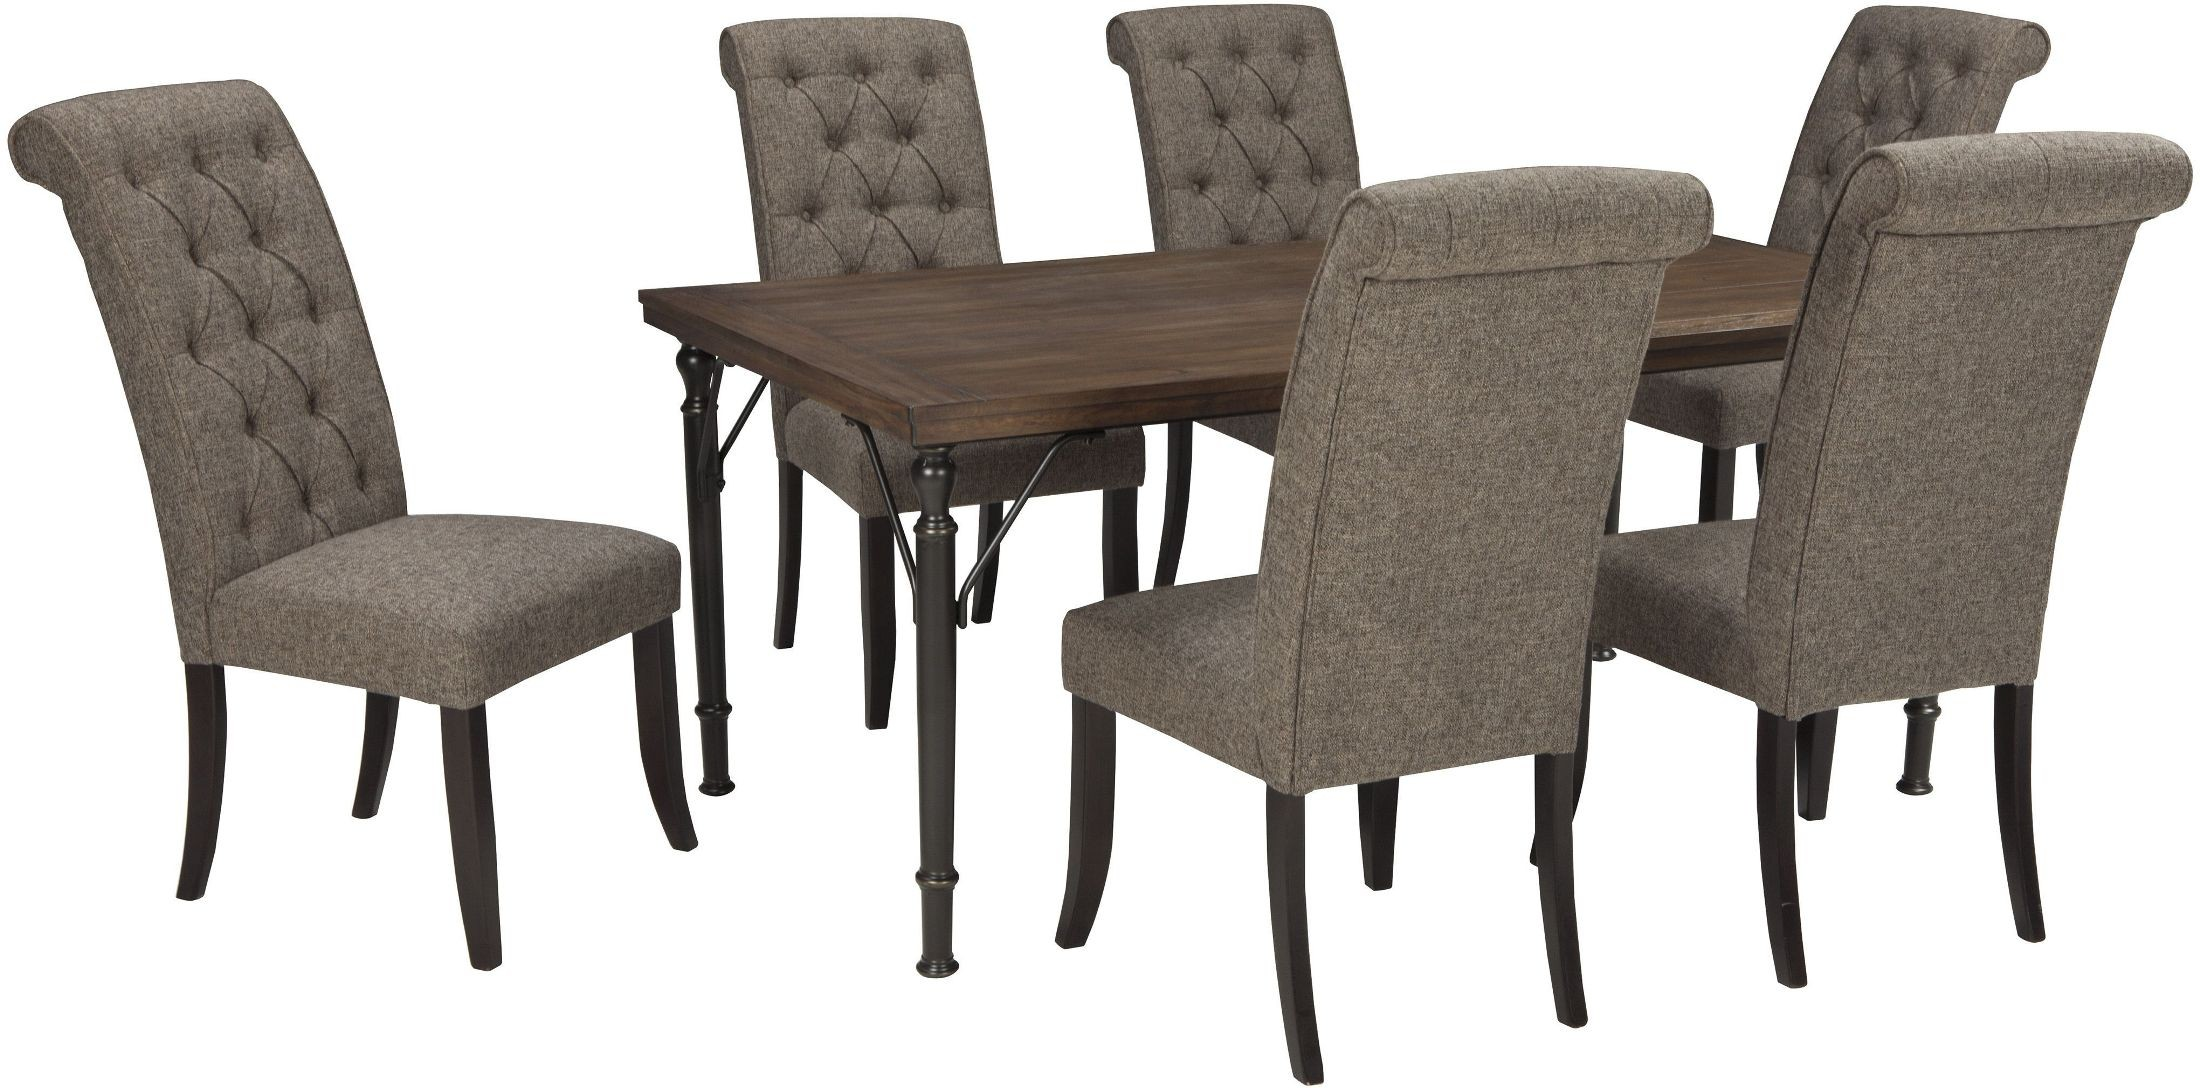 Tripton Graphite Upholstered Side Chair Set of 2 from  : d530 25 026 sw11 from colemanfurniture.com size 2200 x 1088 jpeg 390kB